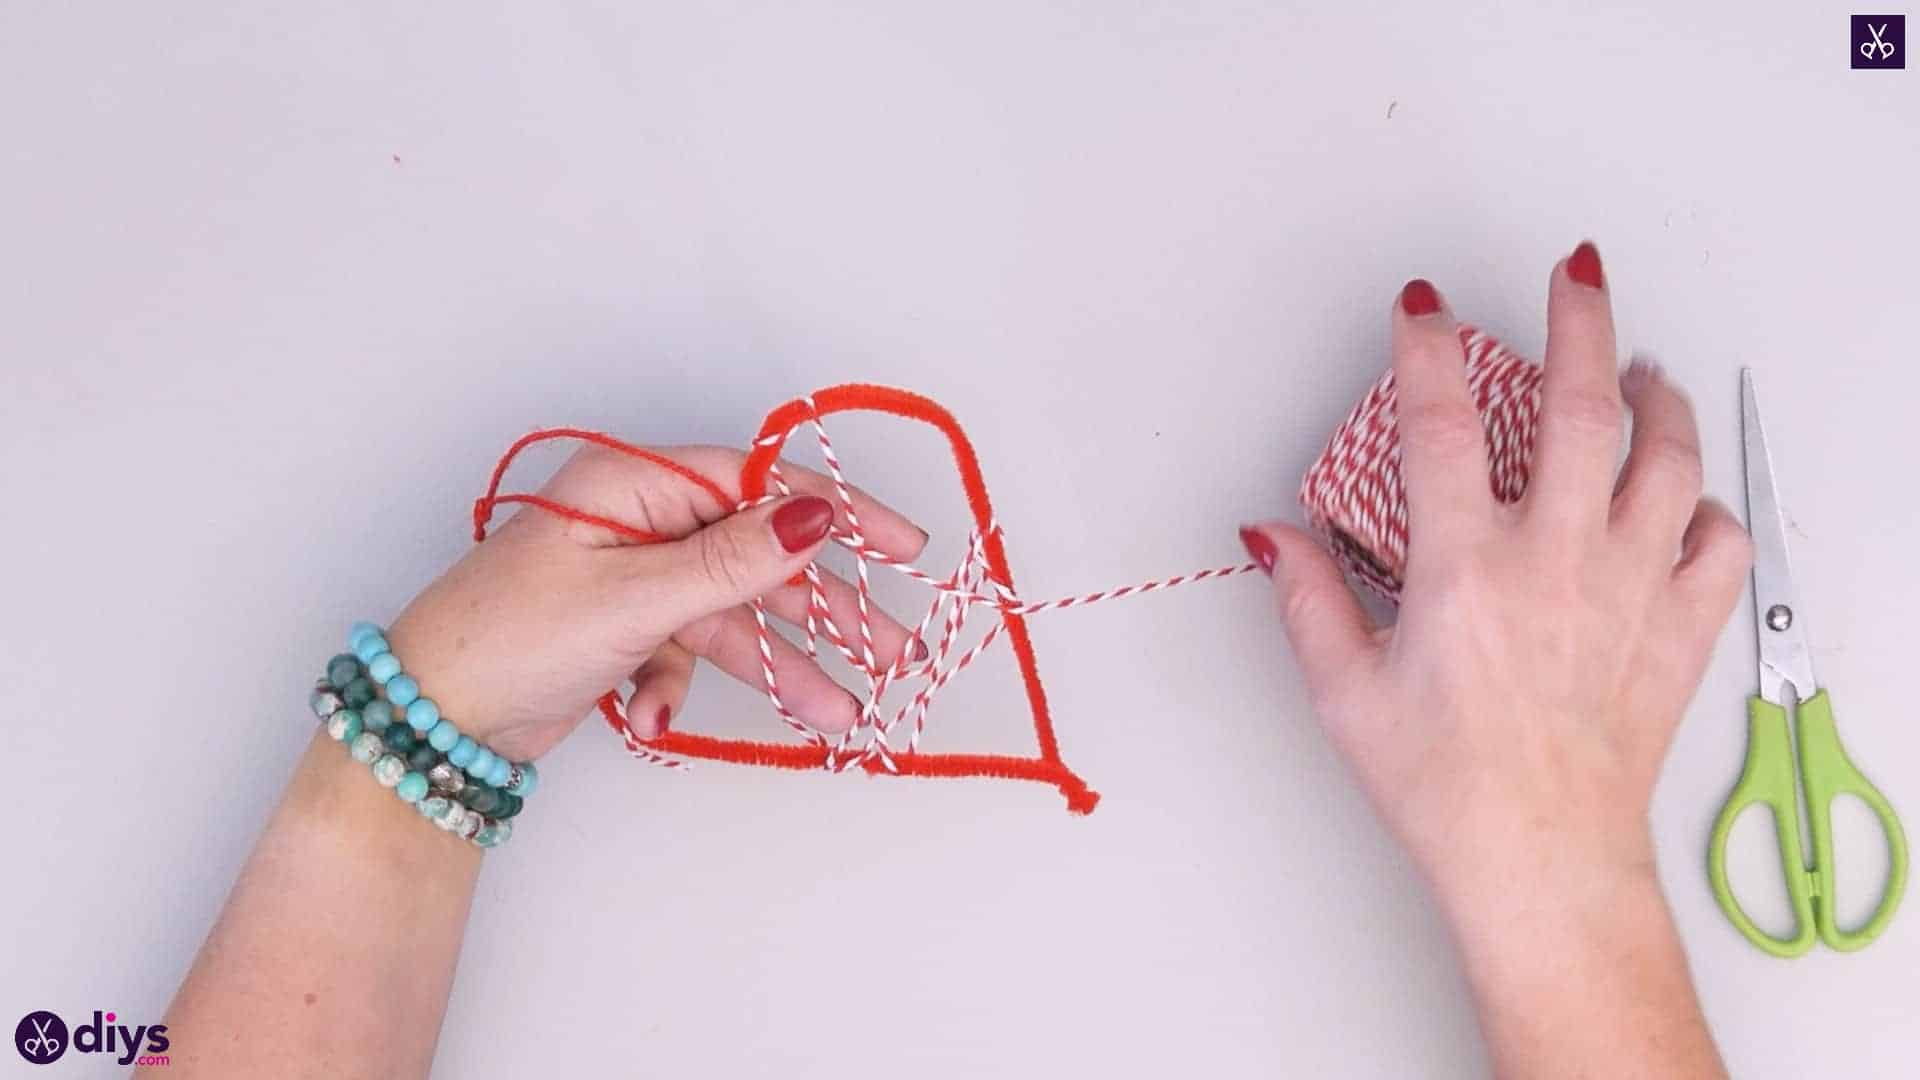 Diy hanging heart wall decor step 4d